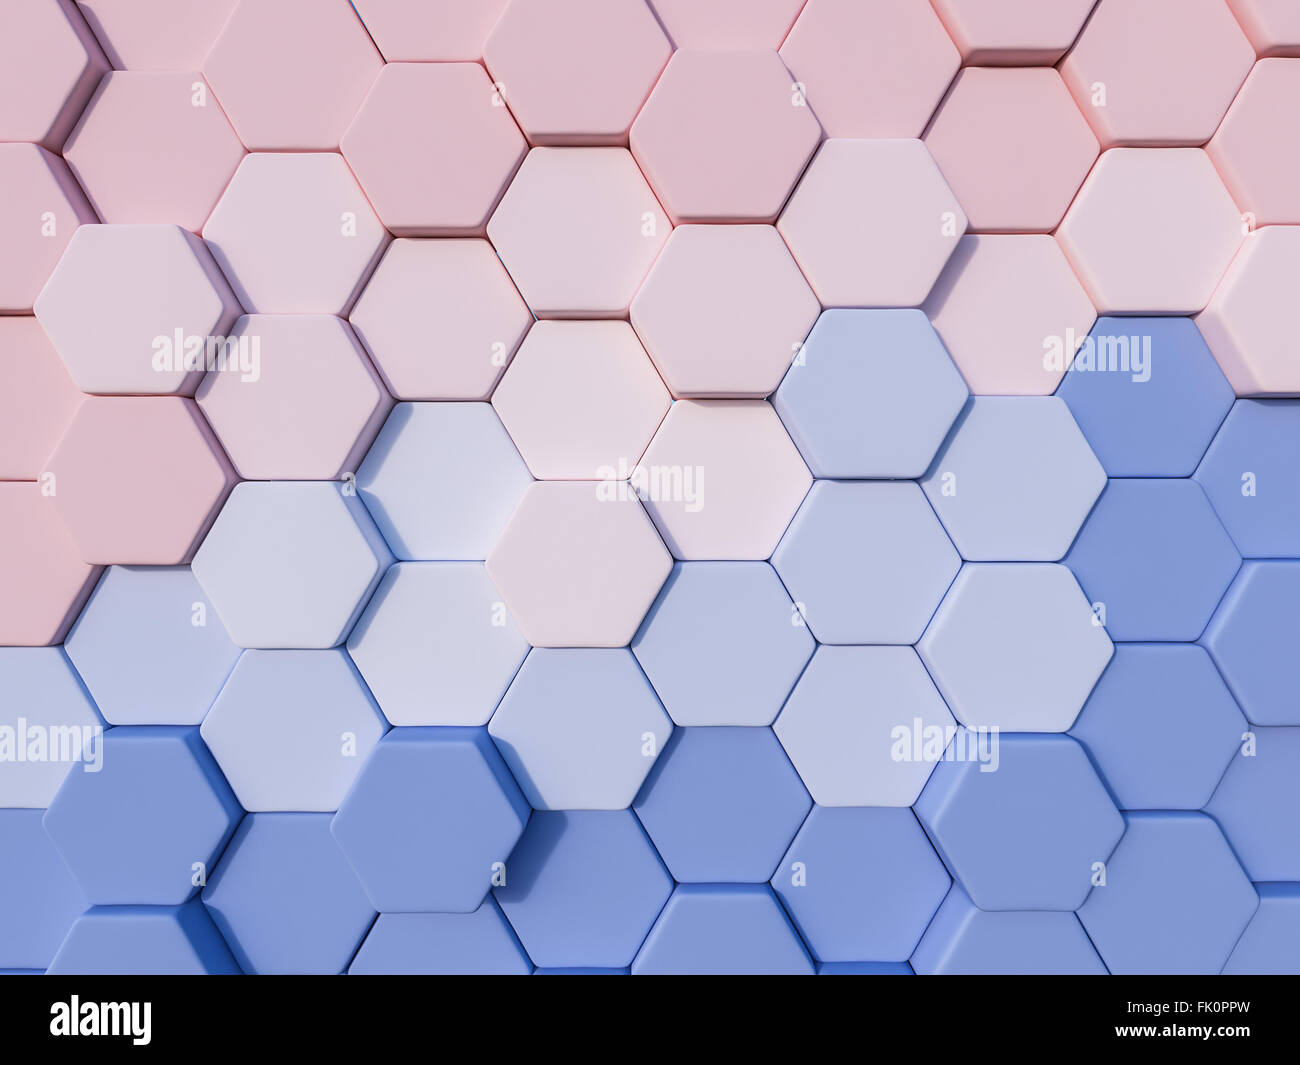 serenity blue and rose quartz abstract 3d hexagon background stock photo  royalty free image